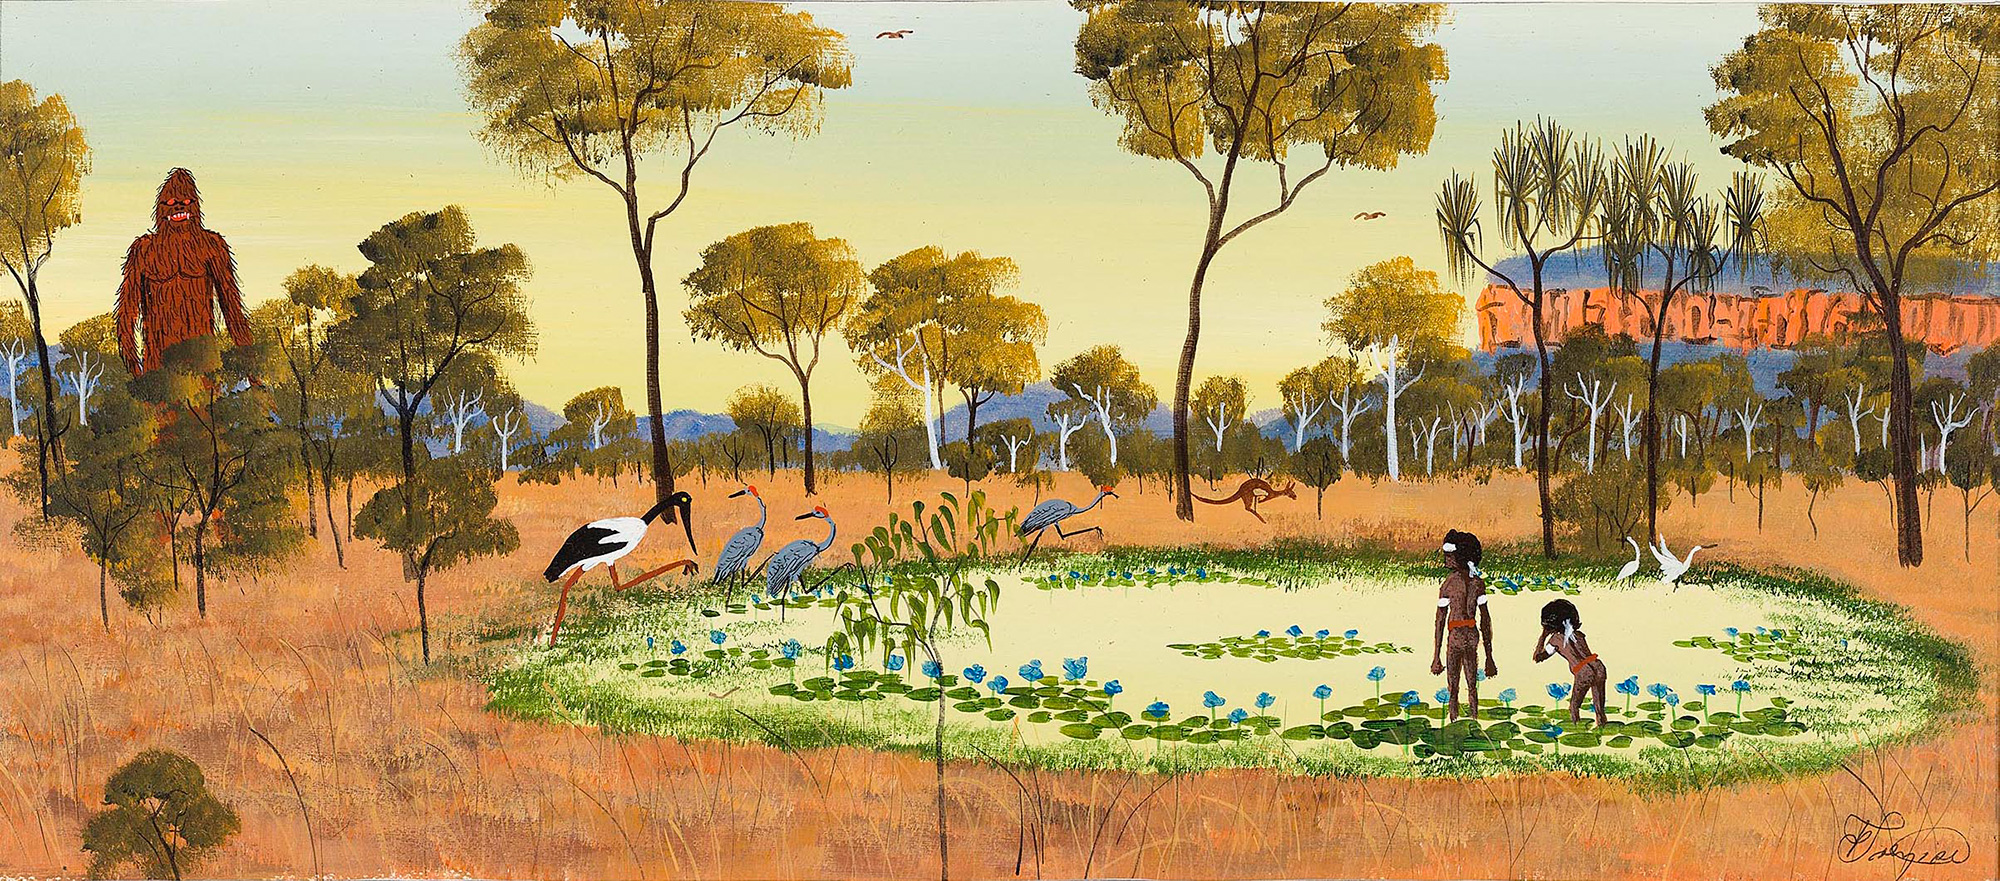 A painting of two Aboriginal boys in a lake, surrounded by water birds.